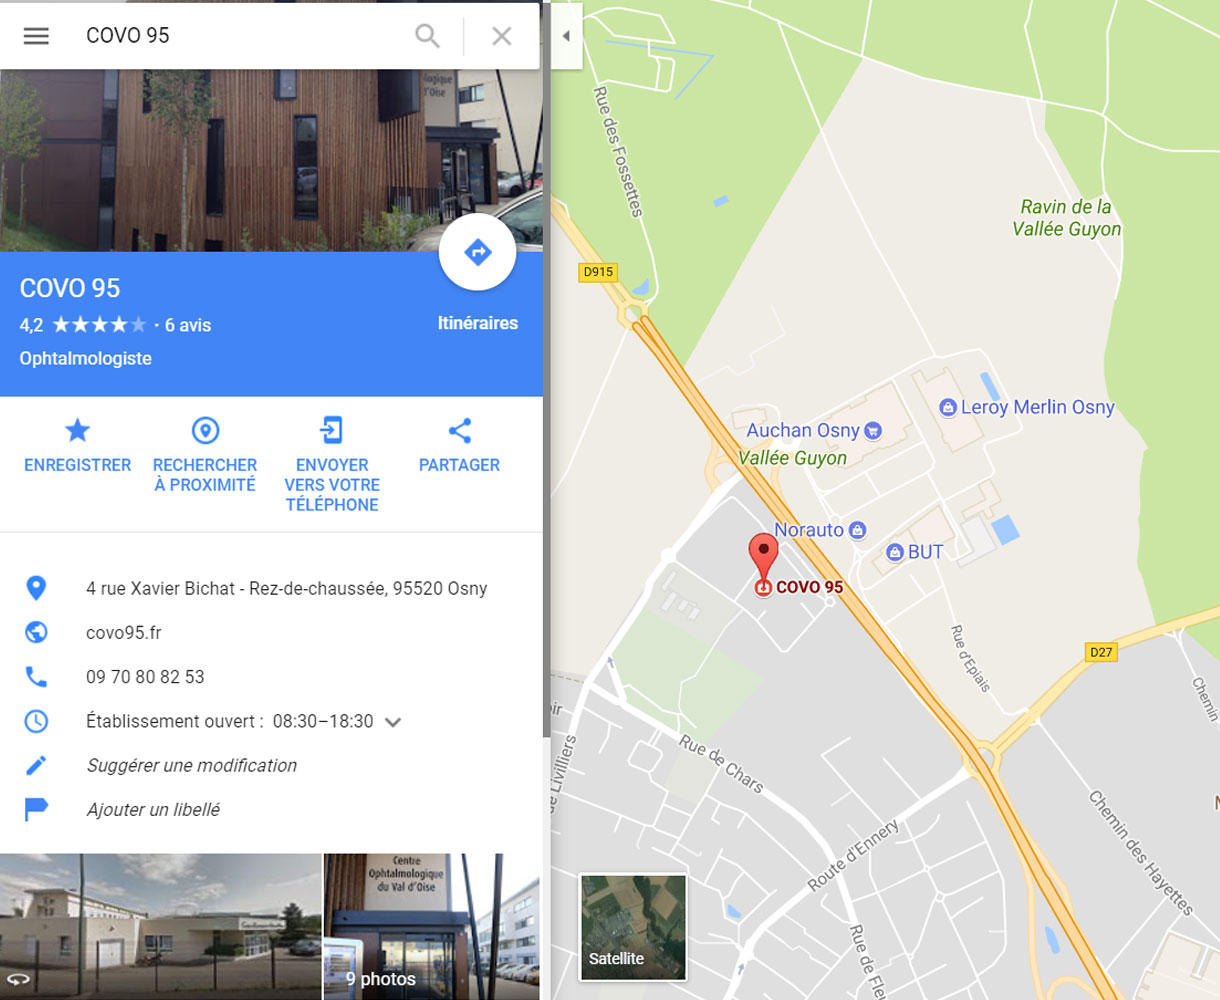 Optimisation Fiche Google My Business - Centre d'ophtalmologie